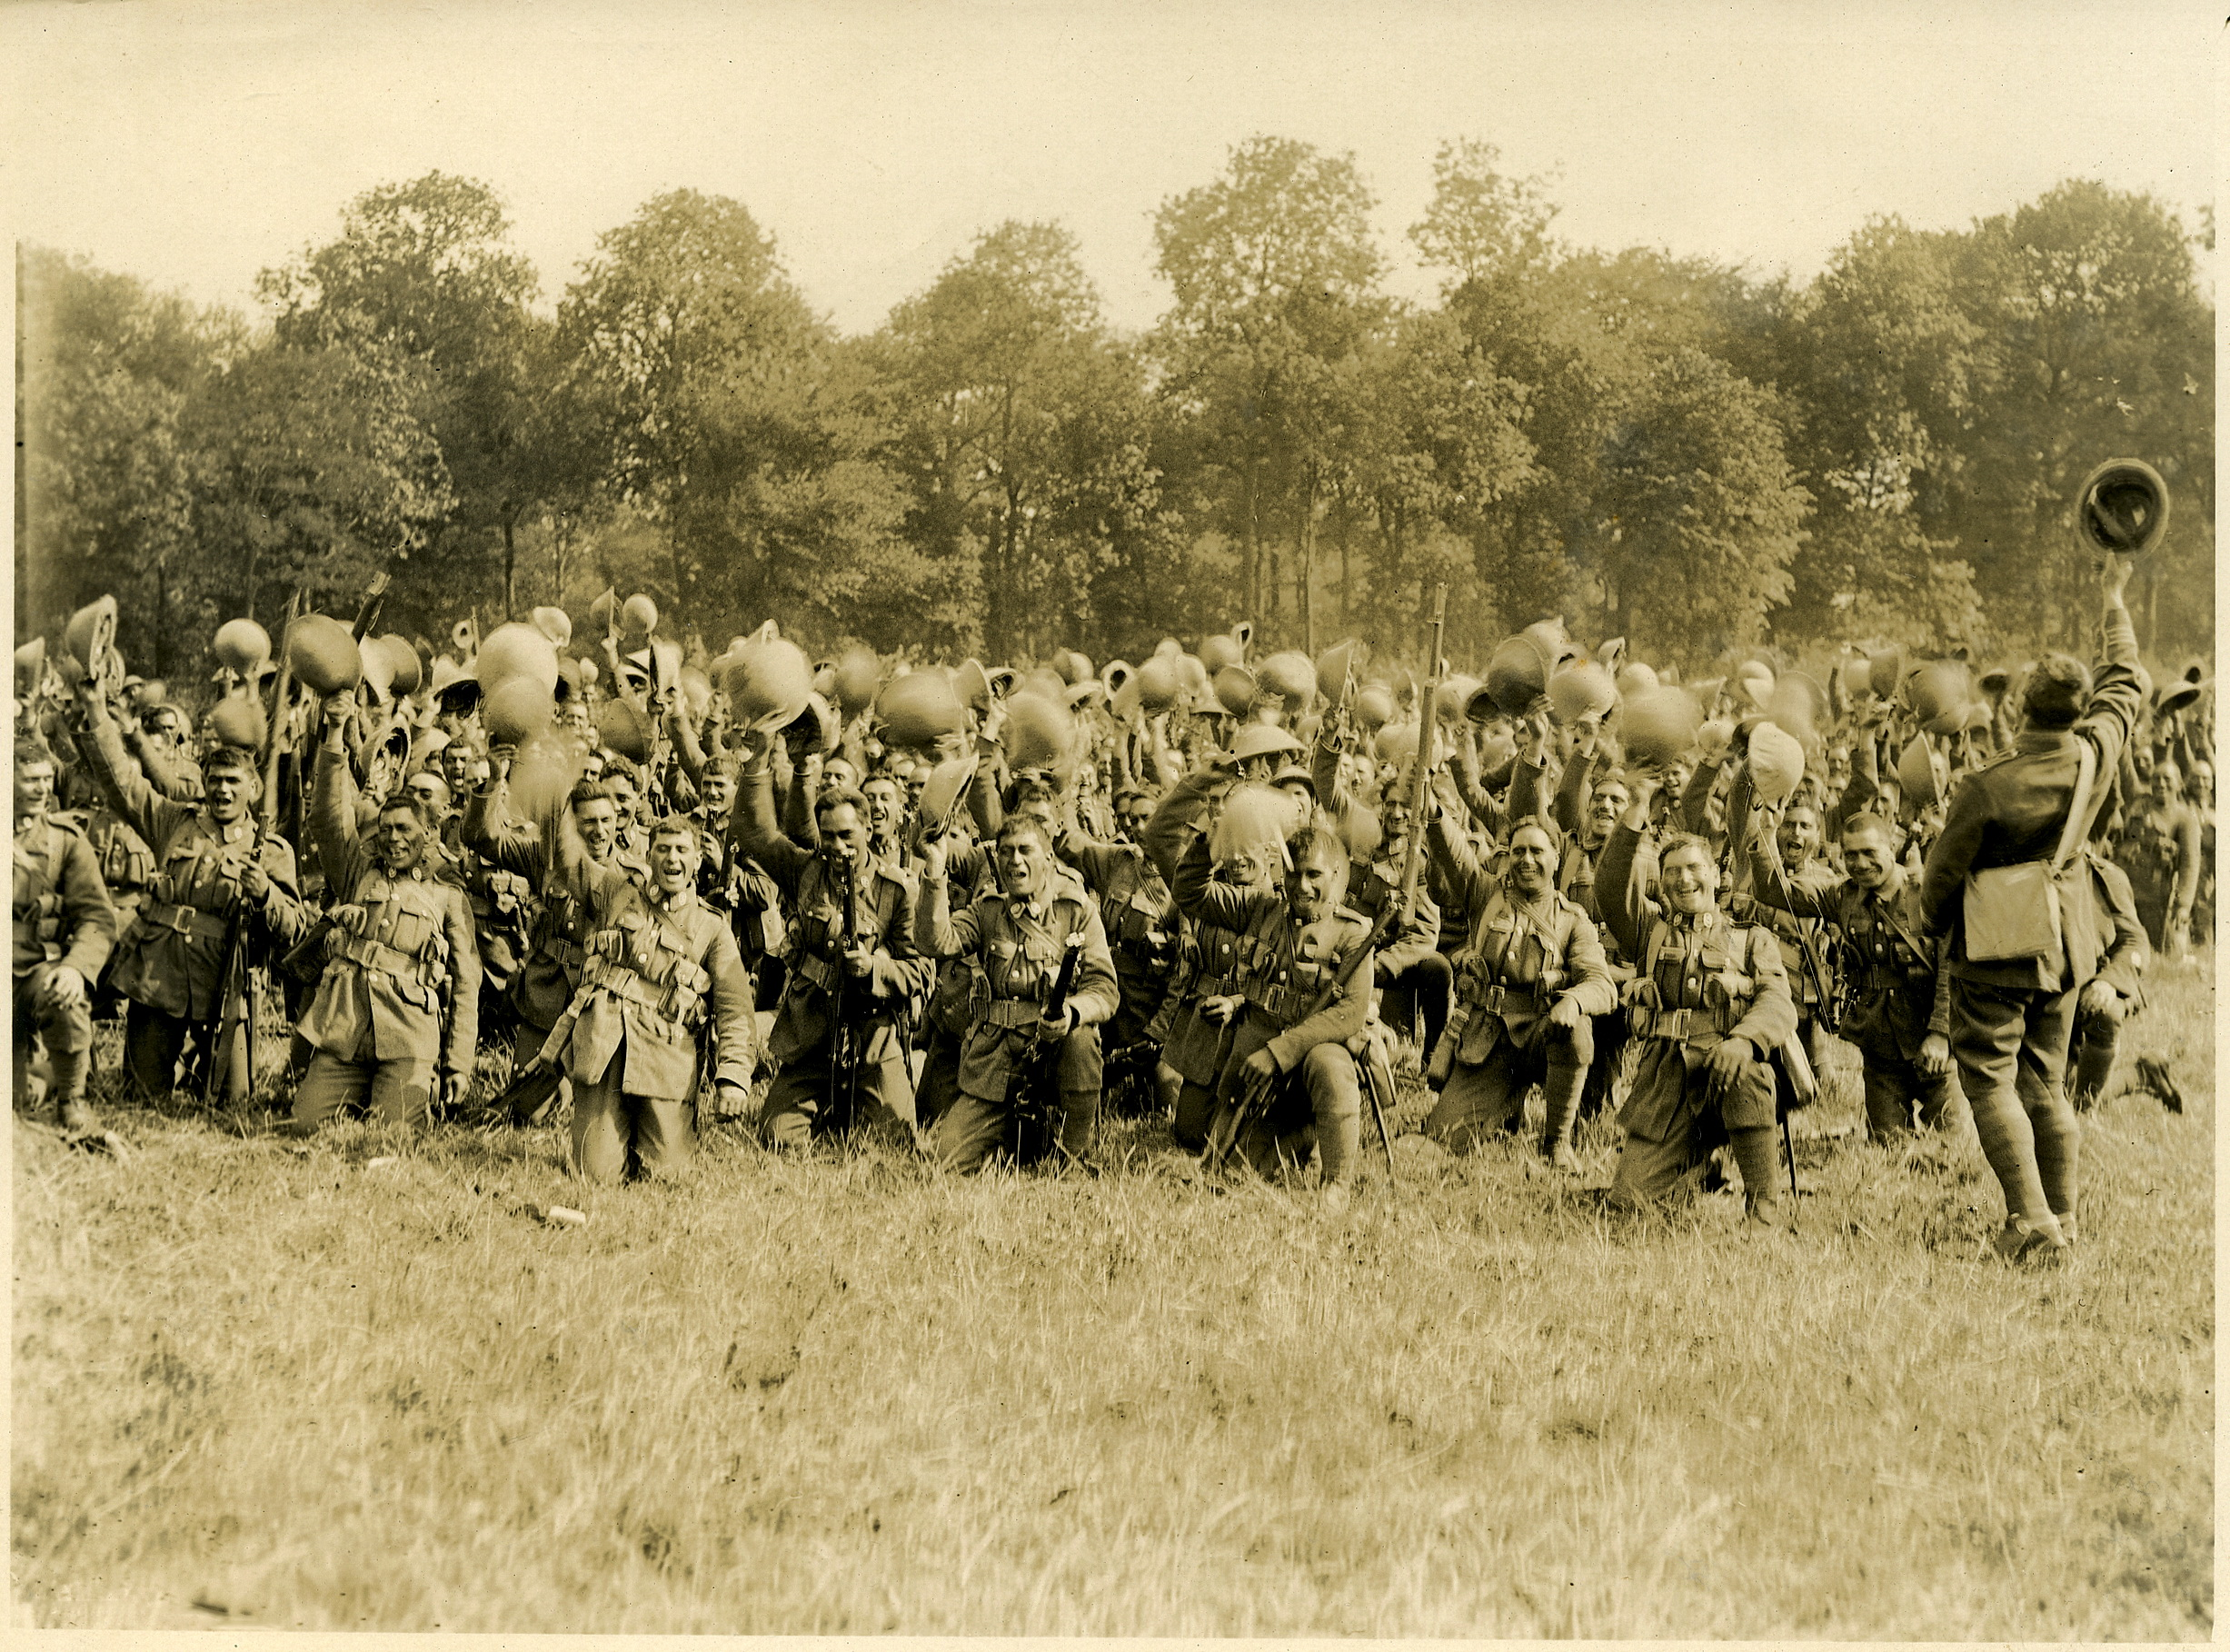 Members of the Maori Pioneer Battalion give a rousing farewell to visiting Prime Minister William Massey and Deputy Prime Minister Sir Joseph Ward who were departing after reviewing the troops. The photograph was taken at Bois-de-Warnimont, France on June 30, 1918, by the Official NZEF photographer, Henry Armytage Sanders. Henry Armytage Sanders was an Official NZEF Photographer (service number 37194) appointed by the New Zealand Government according to New Zealand Division documents. From Archives New Zealand Reference: IA76/13, H687.